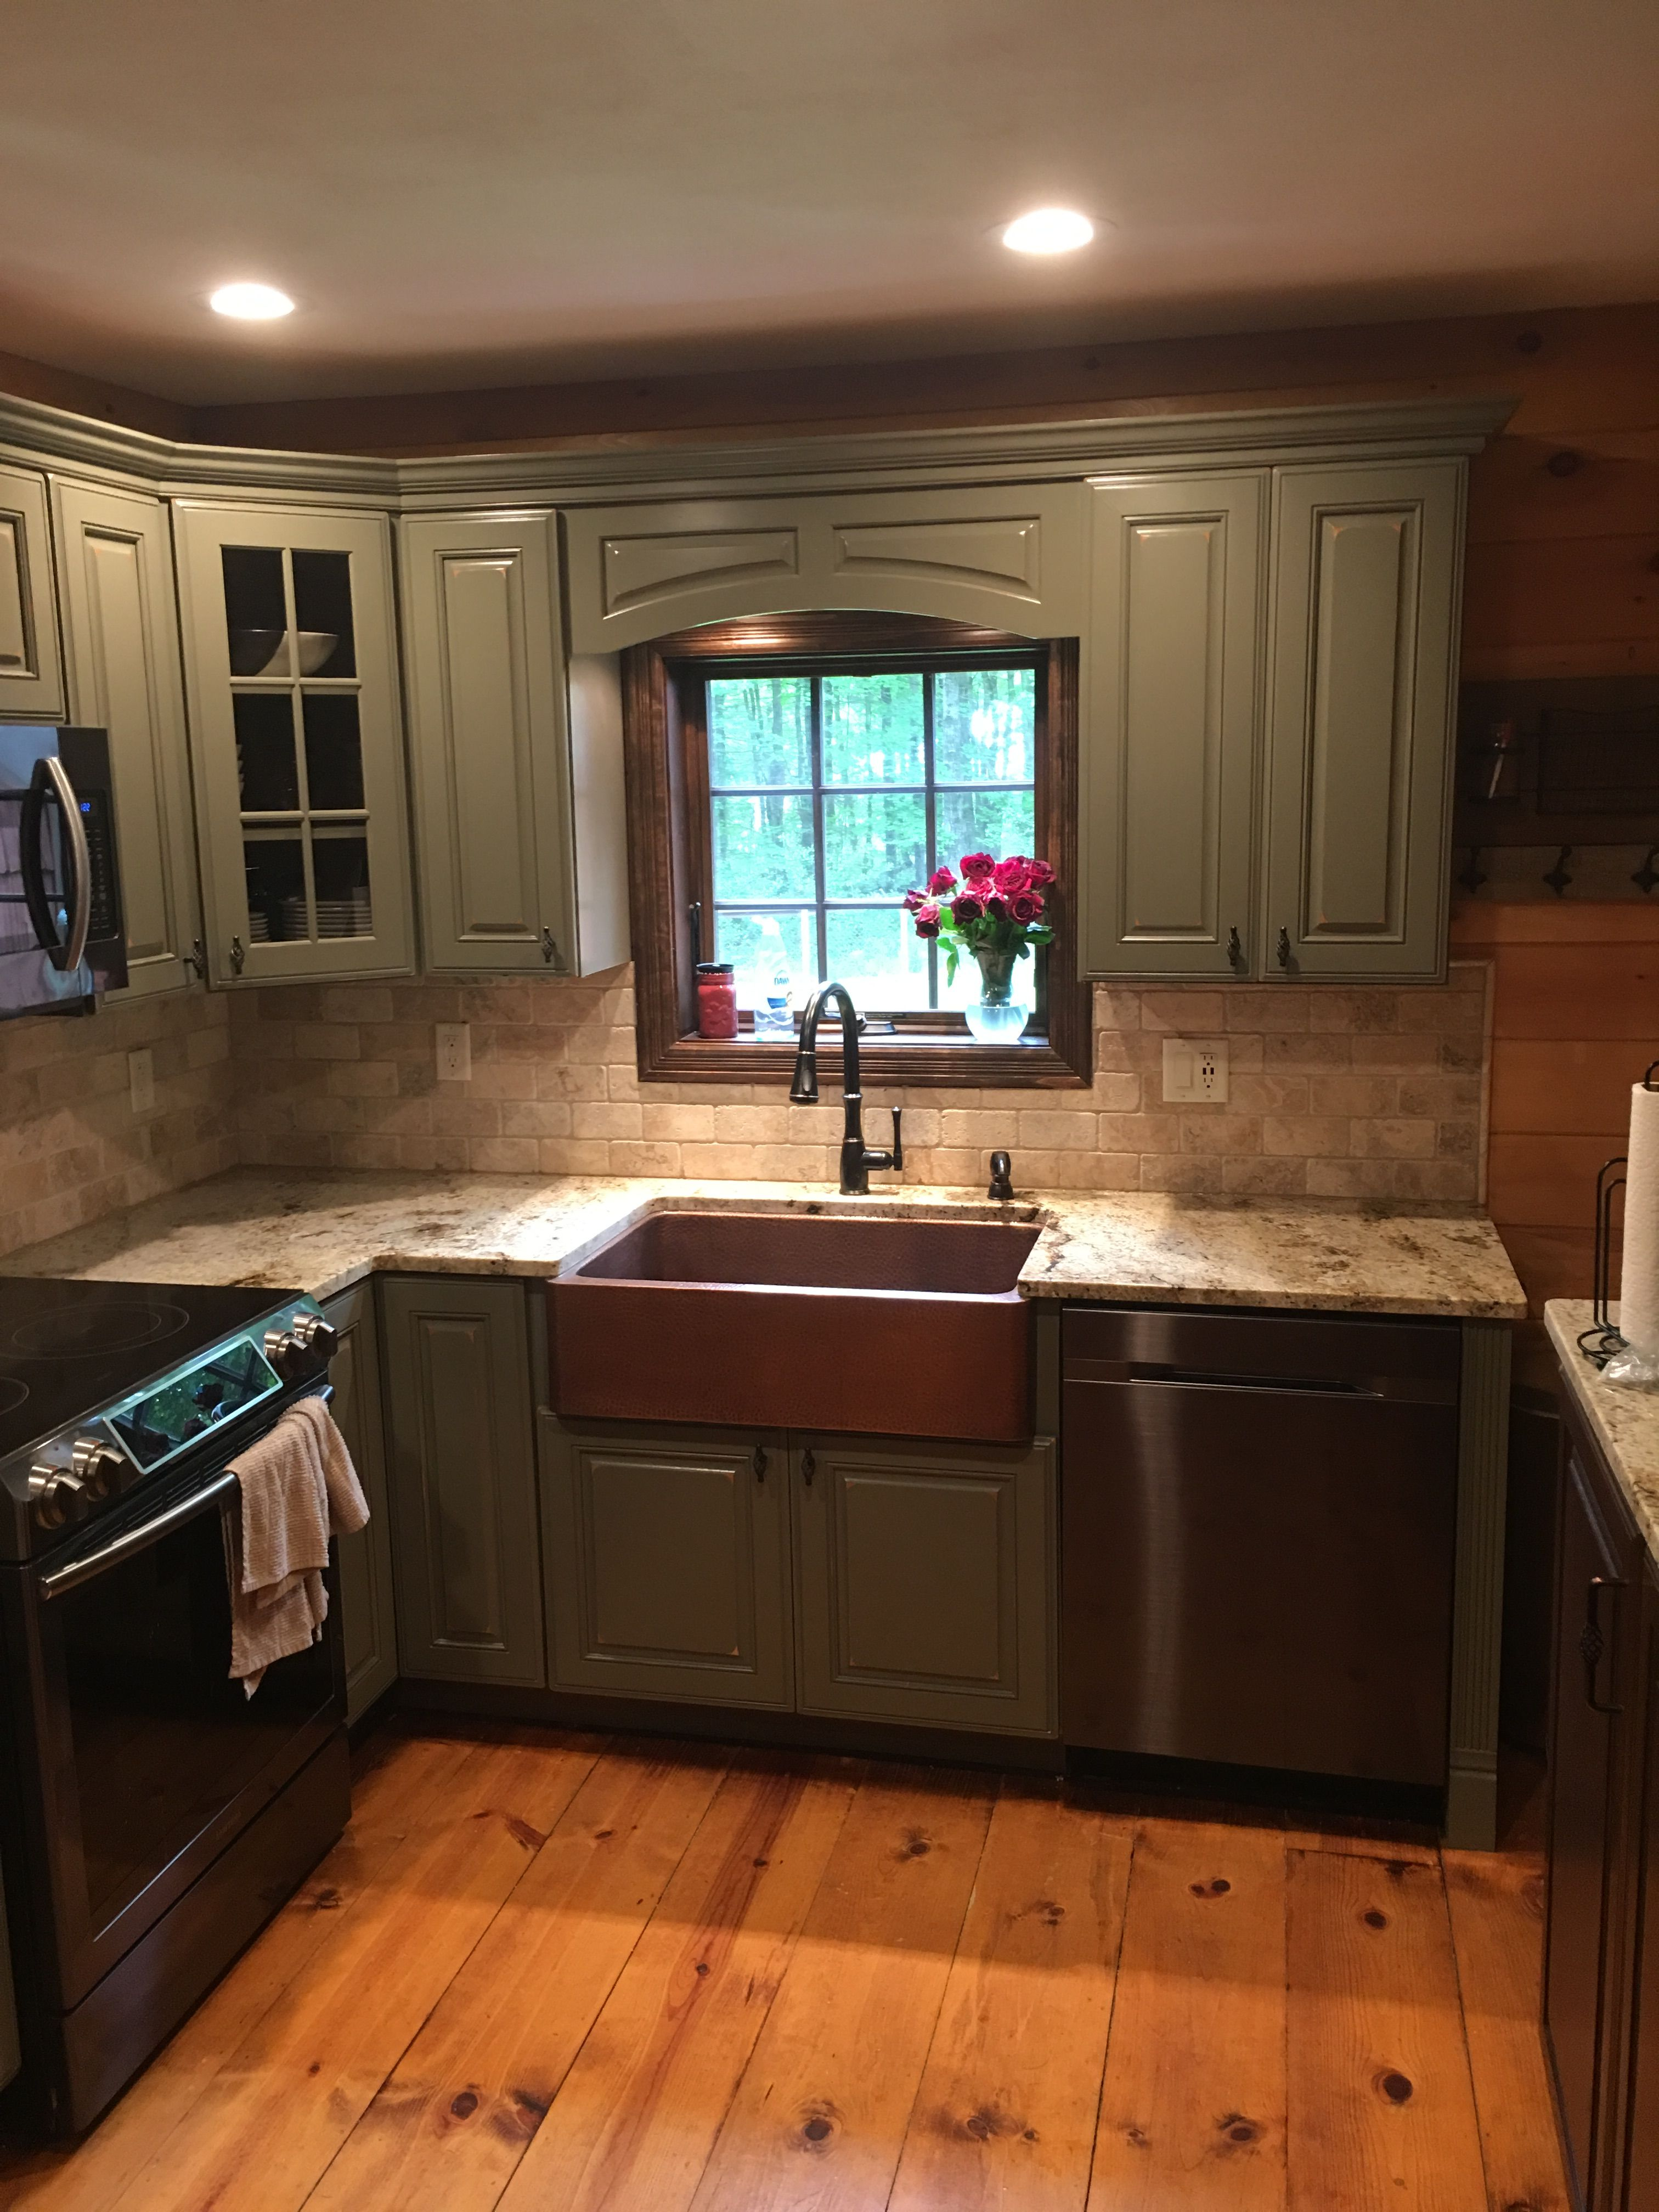 Copper farmhouse sink sage green kraftmaid cabinets kitchen idea